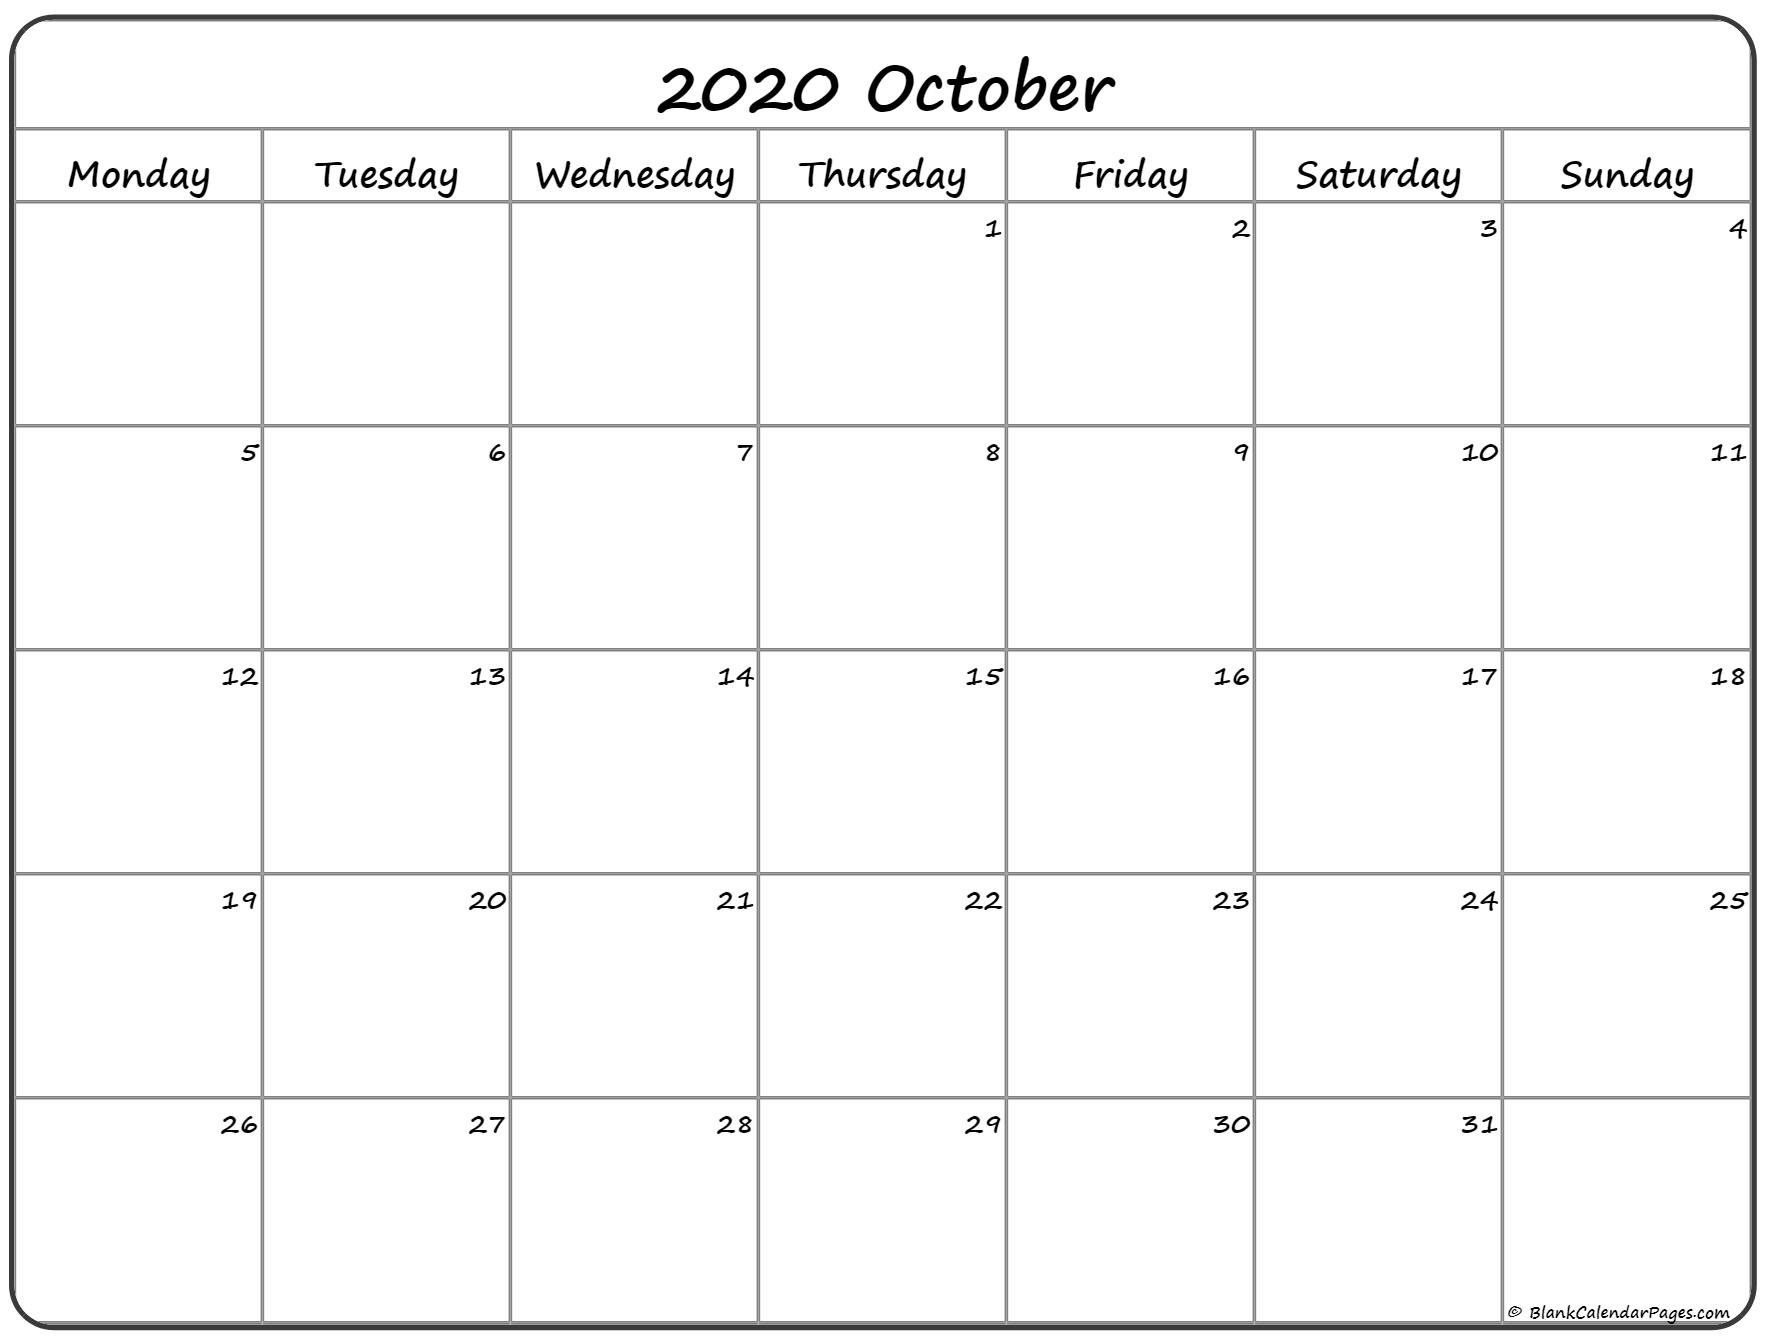 October 2020 Monday Calendar | Monday To Sunday Monday Through Sunday Planner